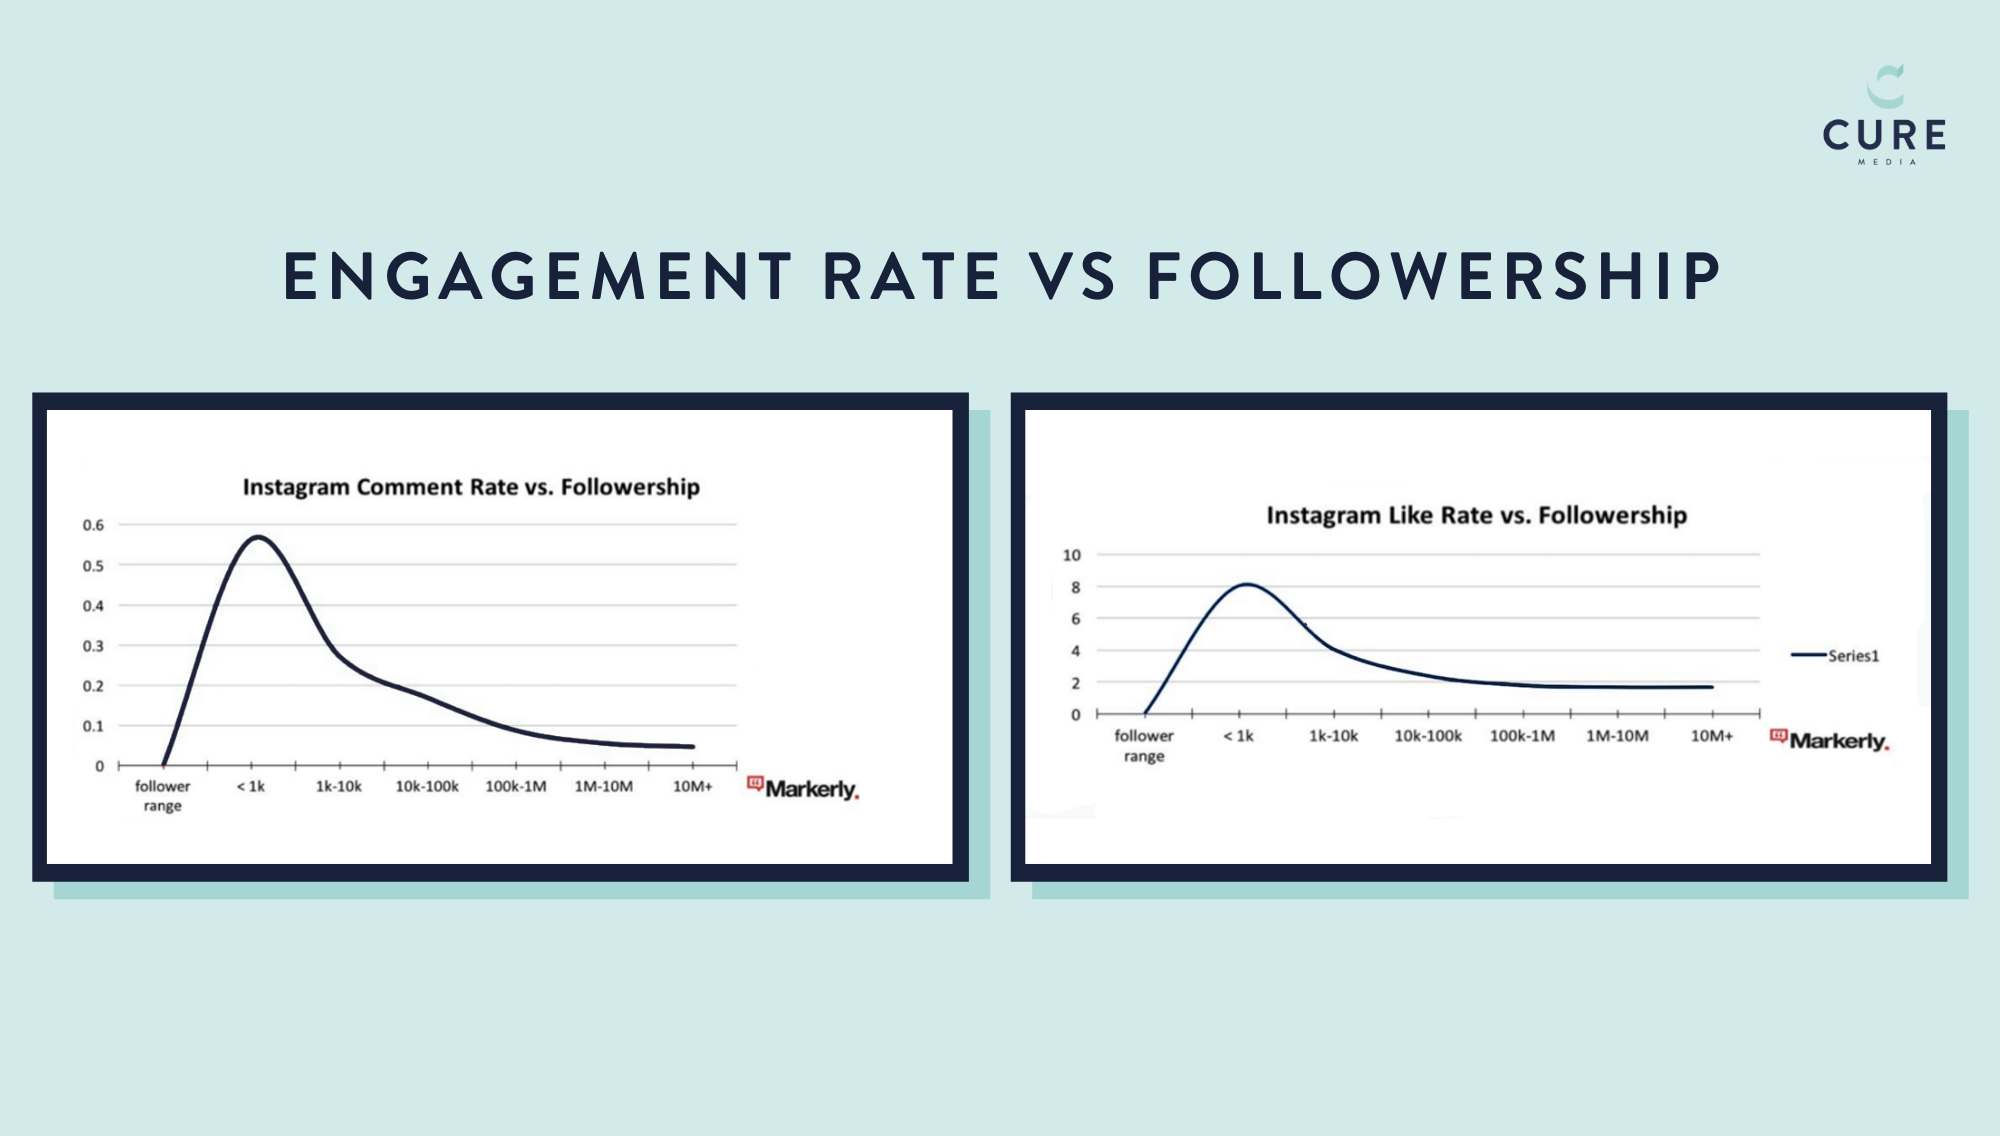 KPIs for measuring ROI from influencer marketing